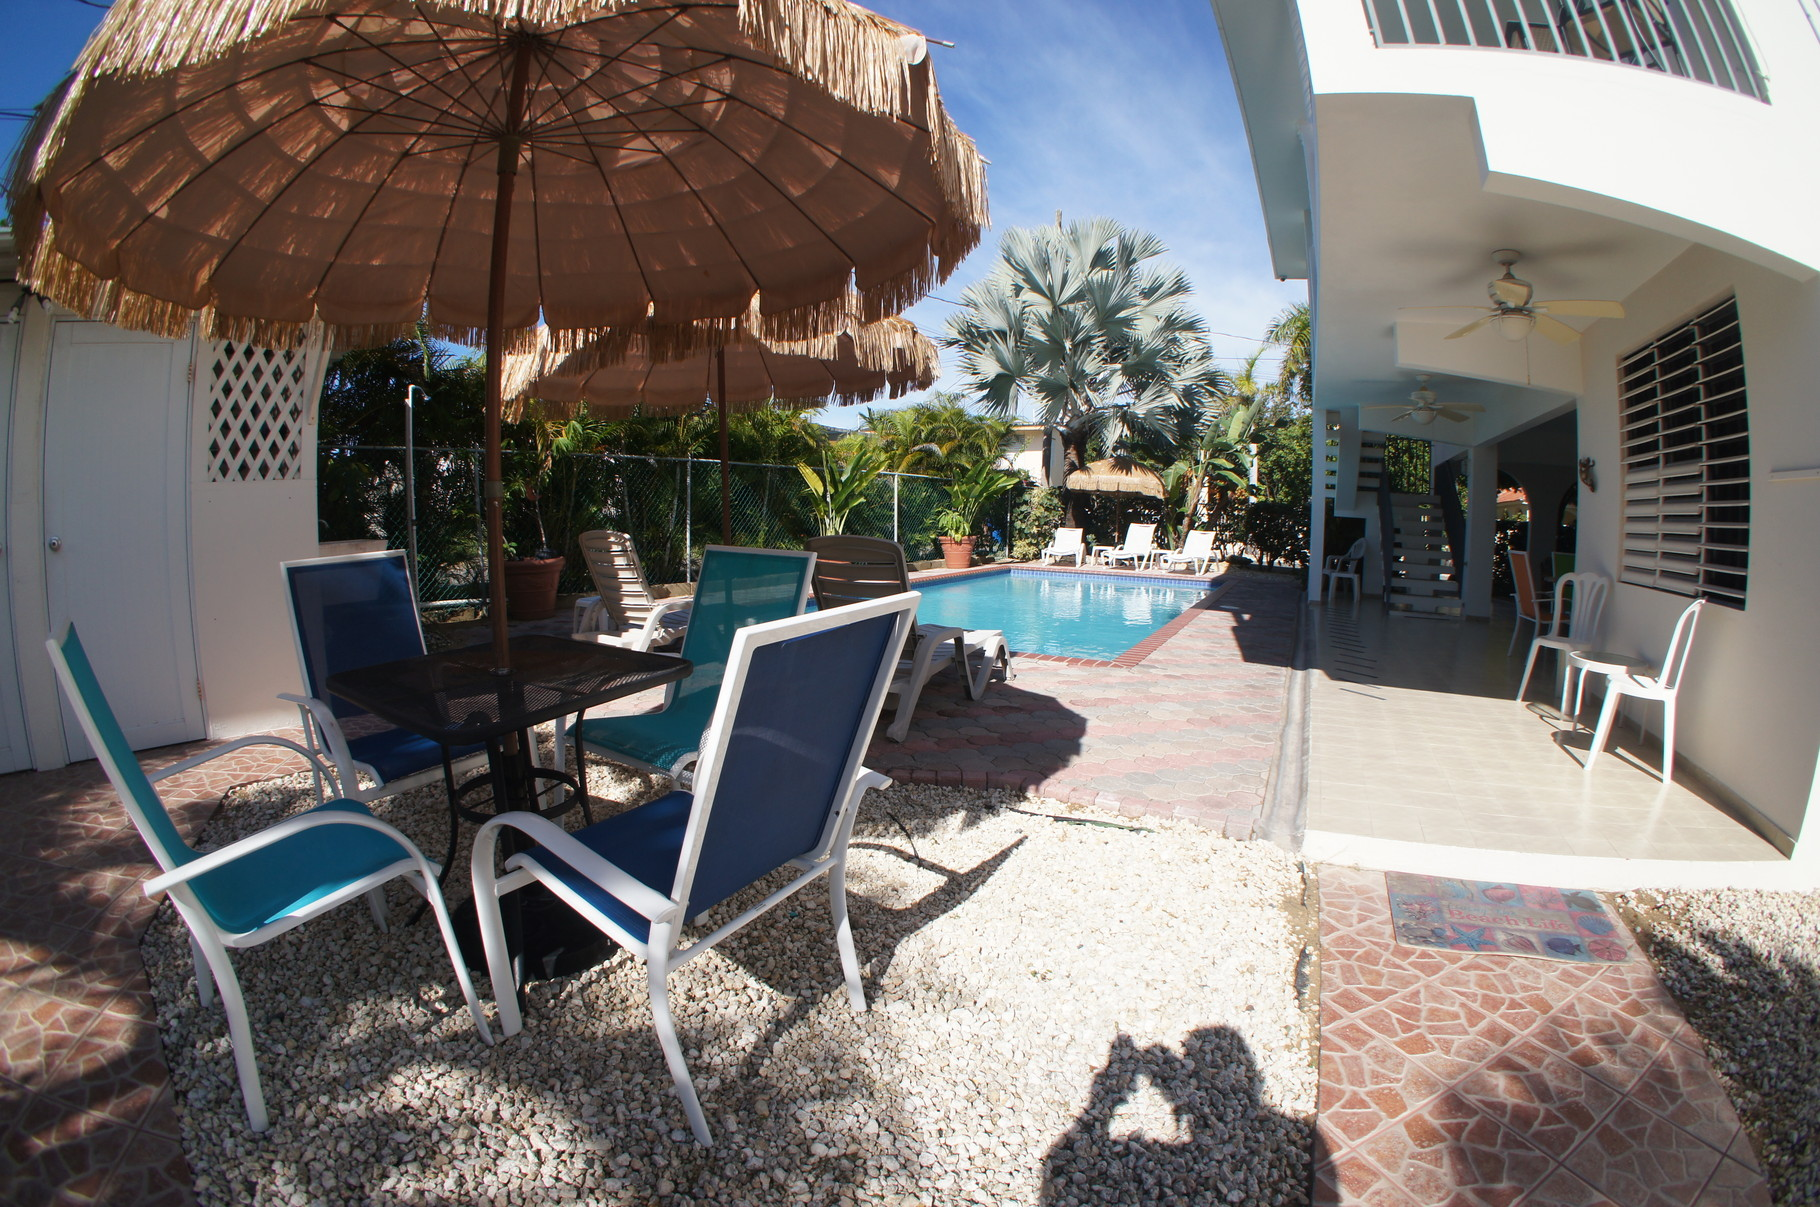 Second Poolside dining area